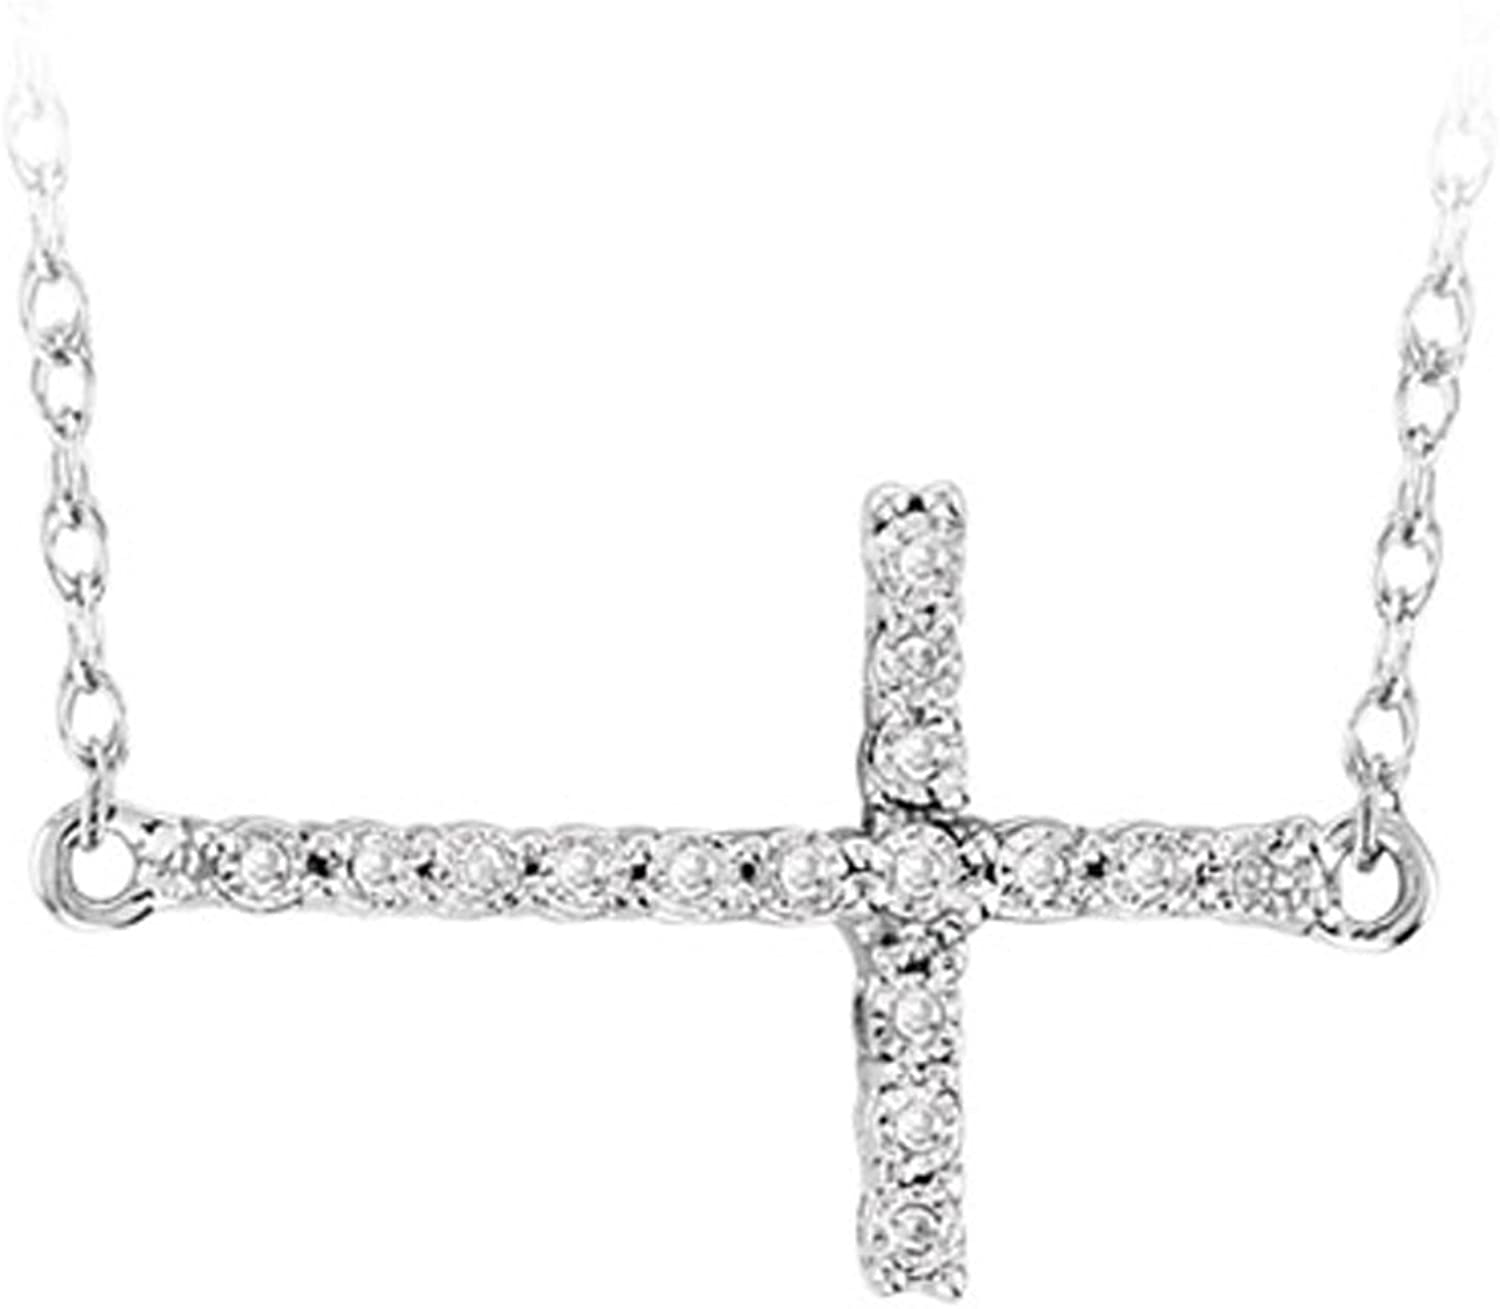 0.05 Carat (ctw) Sterling Silver Sideways Cross Round White Diamond Ladies Pendant with 18 inch Chain